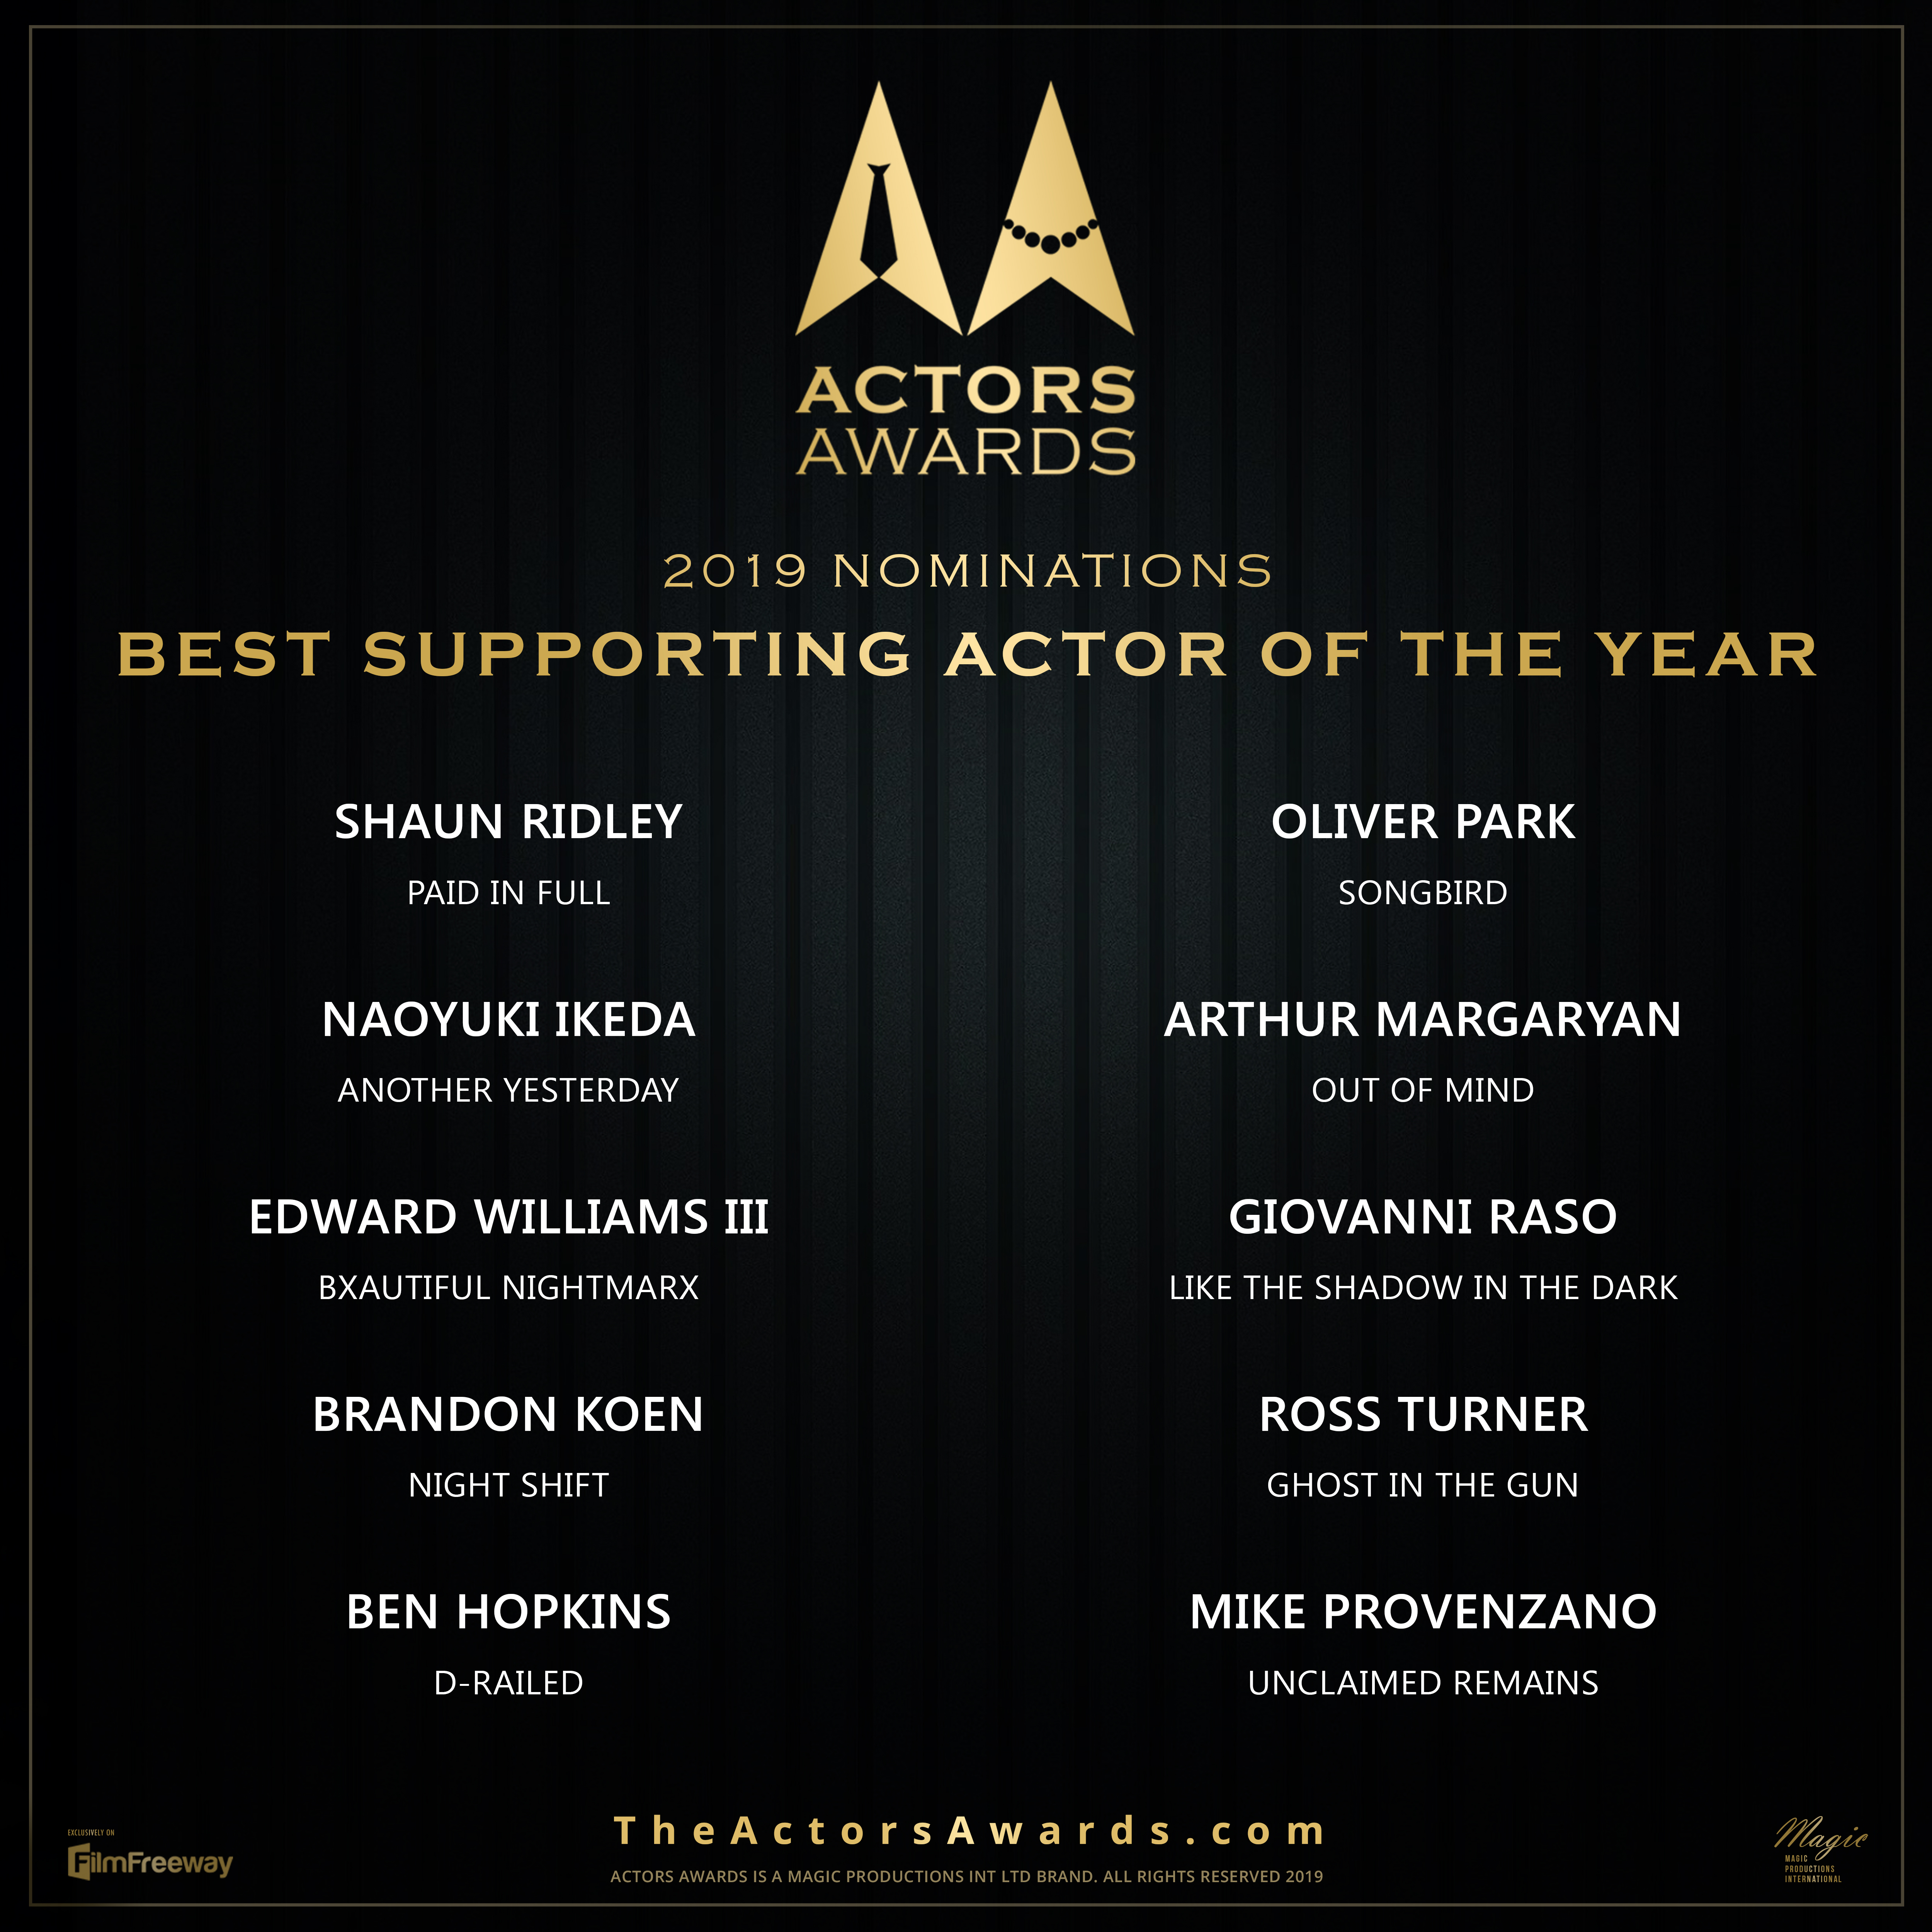 ACTORS AWARDS Best Supporting Actor